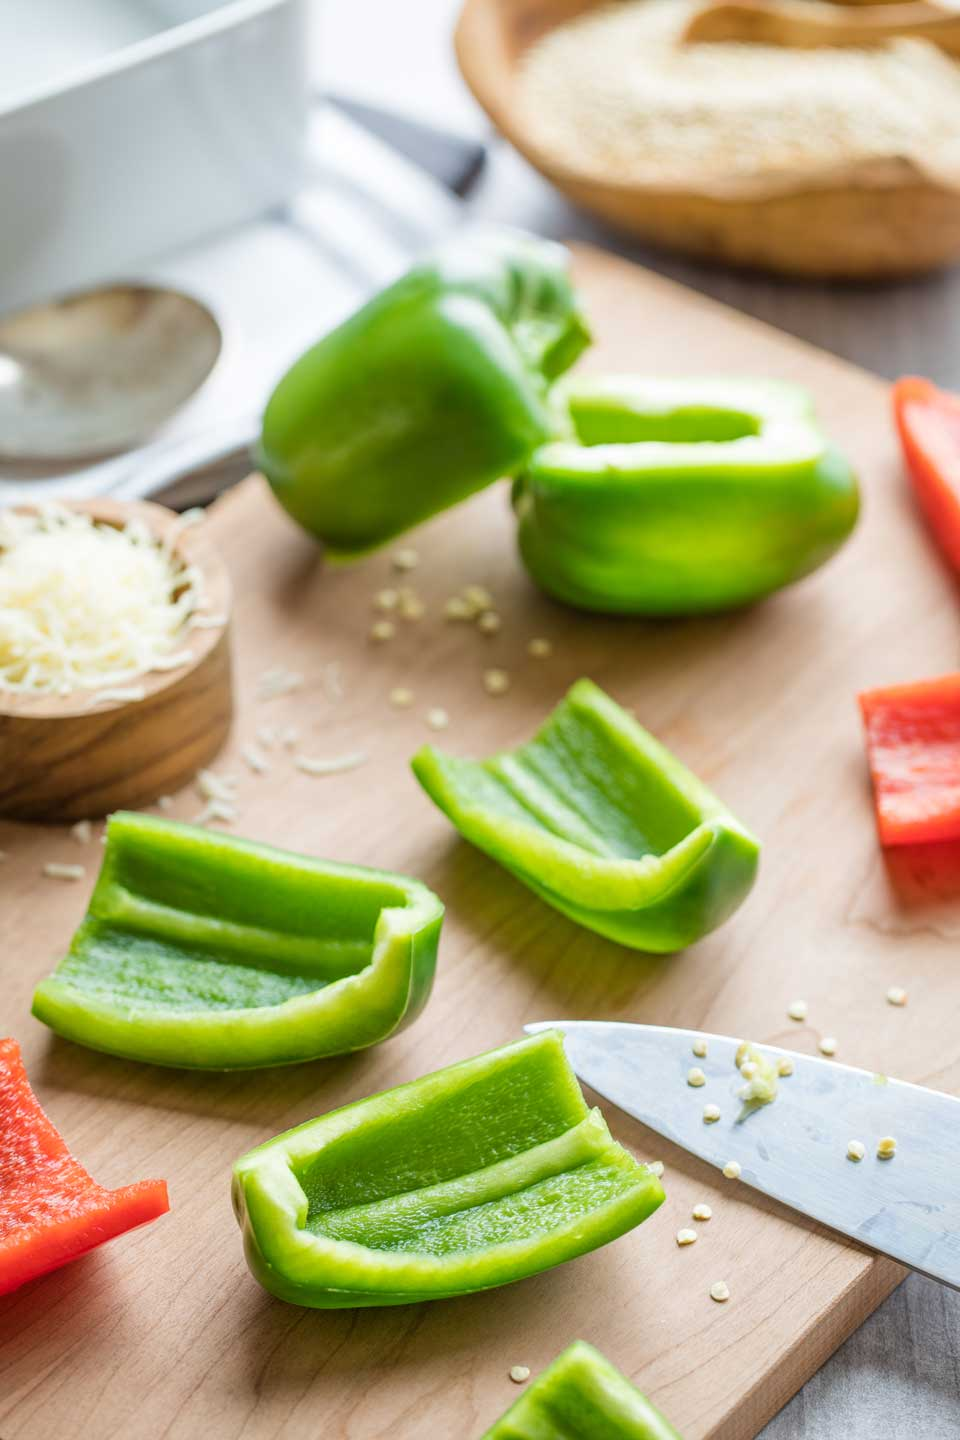 Cutting board with green peppers cut into pieces, with red peppers and cheeses for the casserole also nearby.